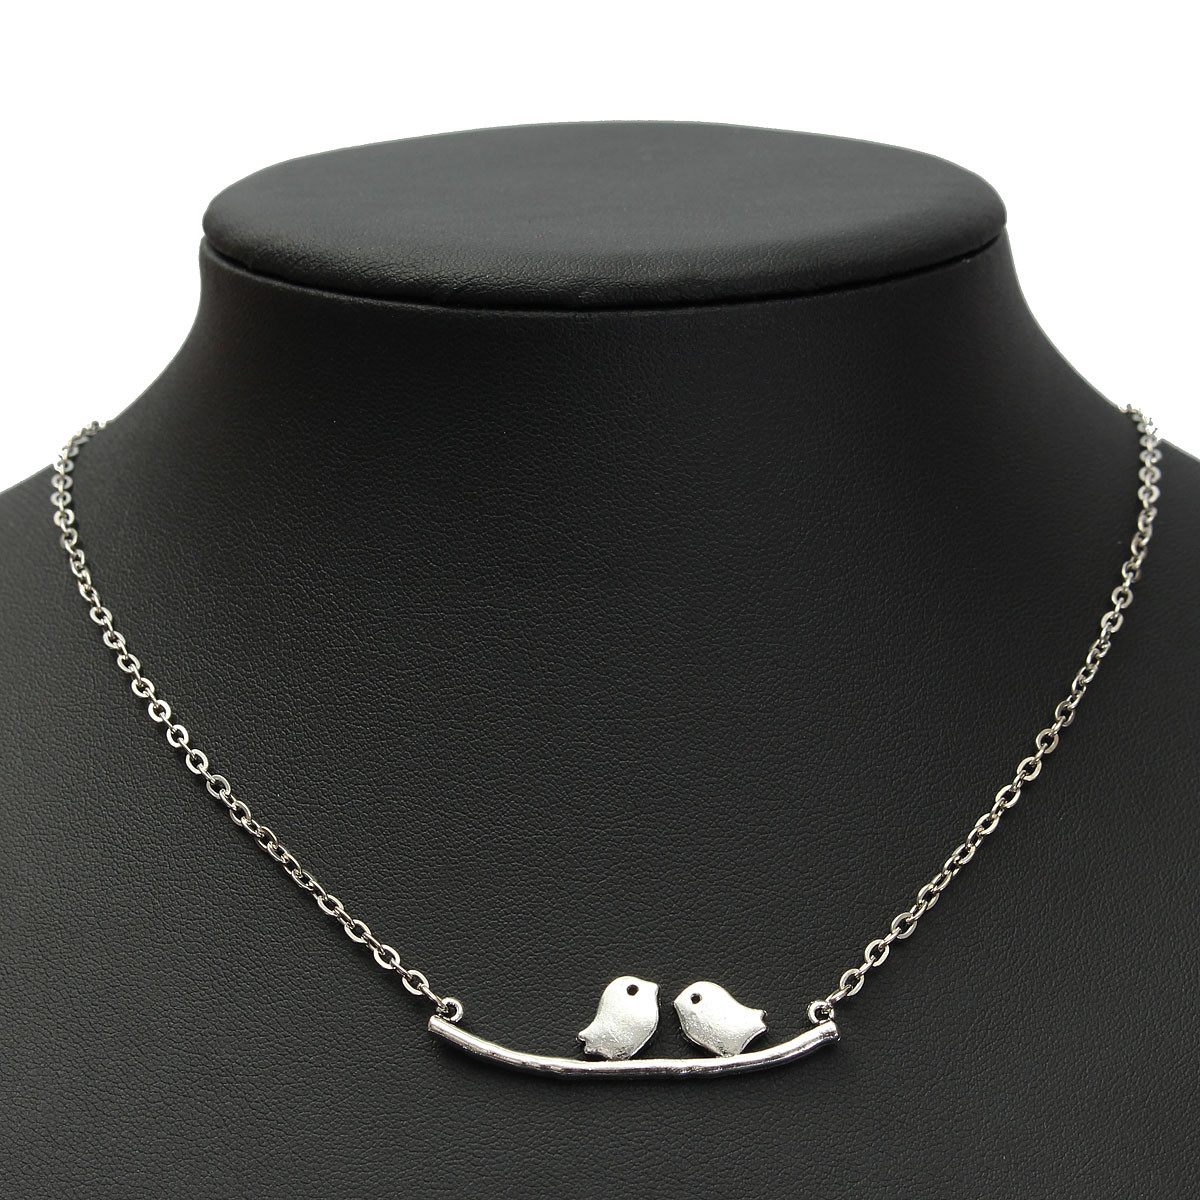 Retro Lovely Birds Branch Silver Clavicle Chain Women Necklace Jewelry